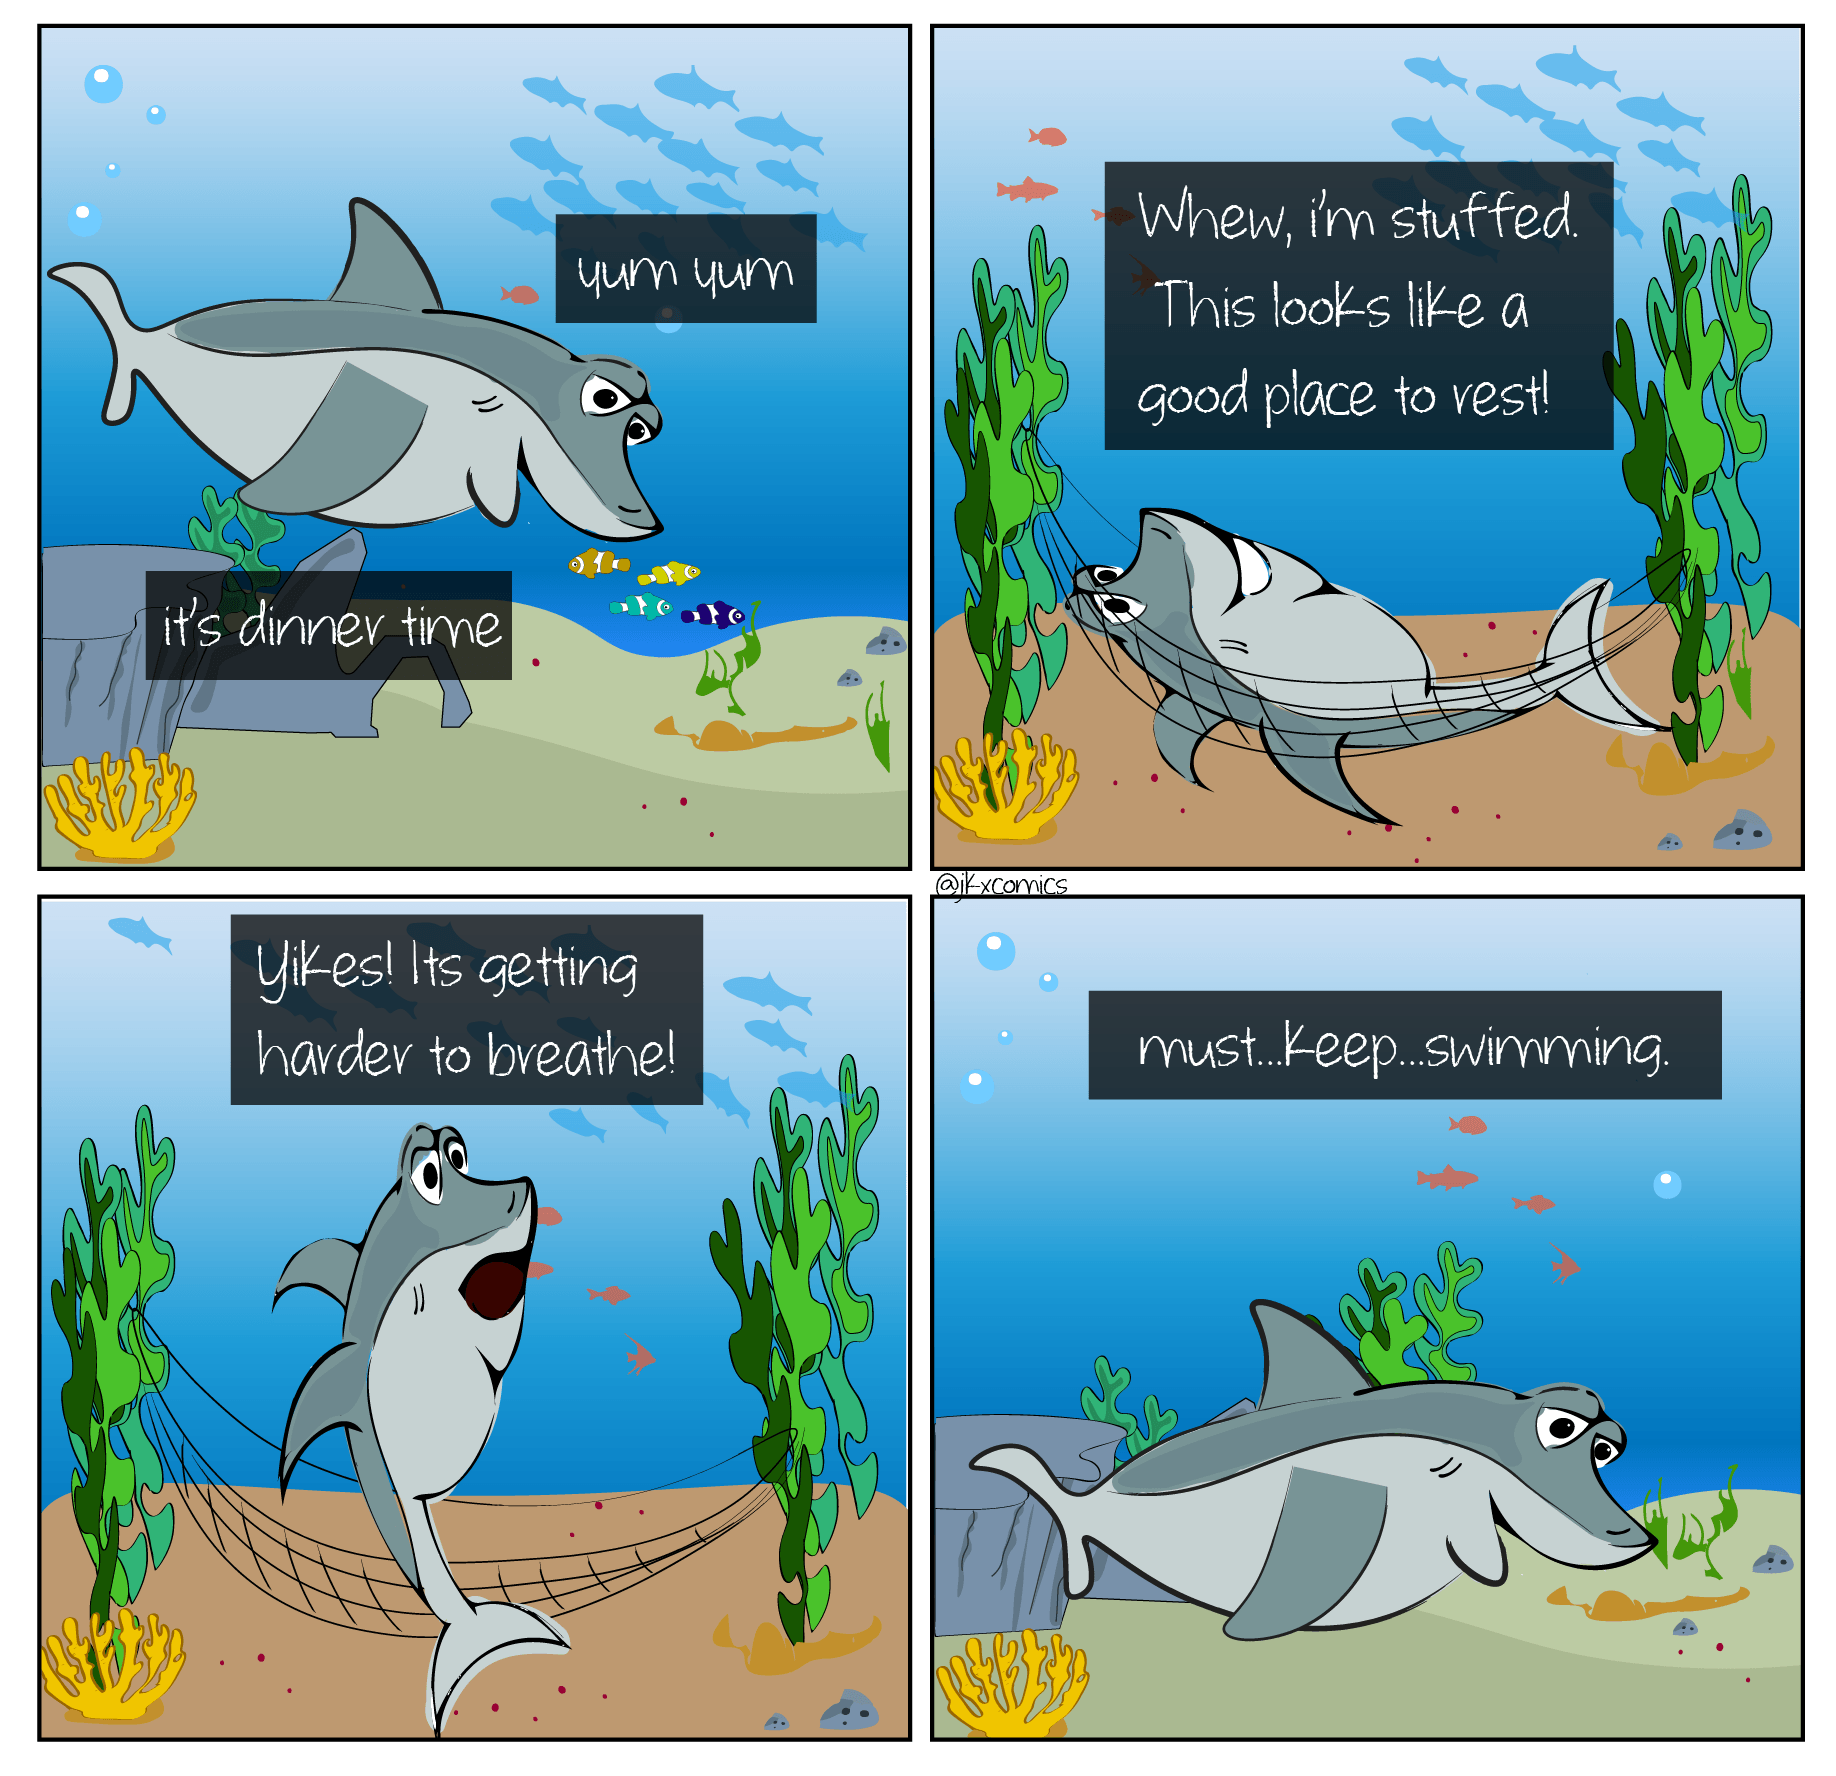 A huge  MYTH  about sharks is that they will die if they stop swimming! Sharks do not have to continuously swim to breathe or to stay alive. In fact, many shark species can use two processes to obtain oxygen directly from the surrounding ocean water. These processes are called buccal pumping and ram ventilation. During buccal pumping sharks use their cheek muscles to filter water into their mouths and over their gills. During ram ventilation, sharks rapidly swim and actively force water into their mouths for processing. Many modern sharks are believed to use ram ventilation only, though some have still been caught resting on the ocean floor! Scientist are still learning how these sharks adjust to low oxygen conditions.